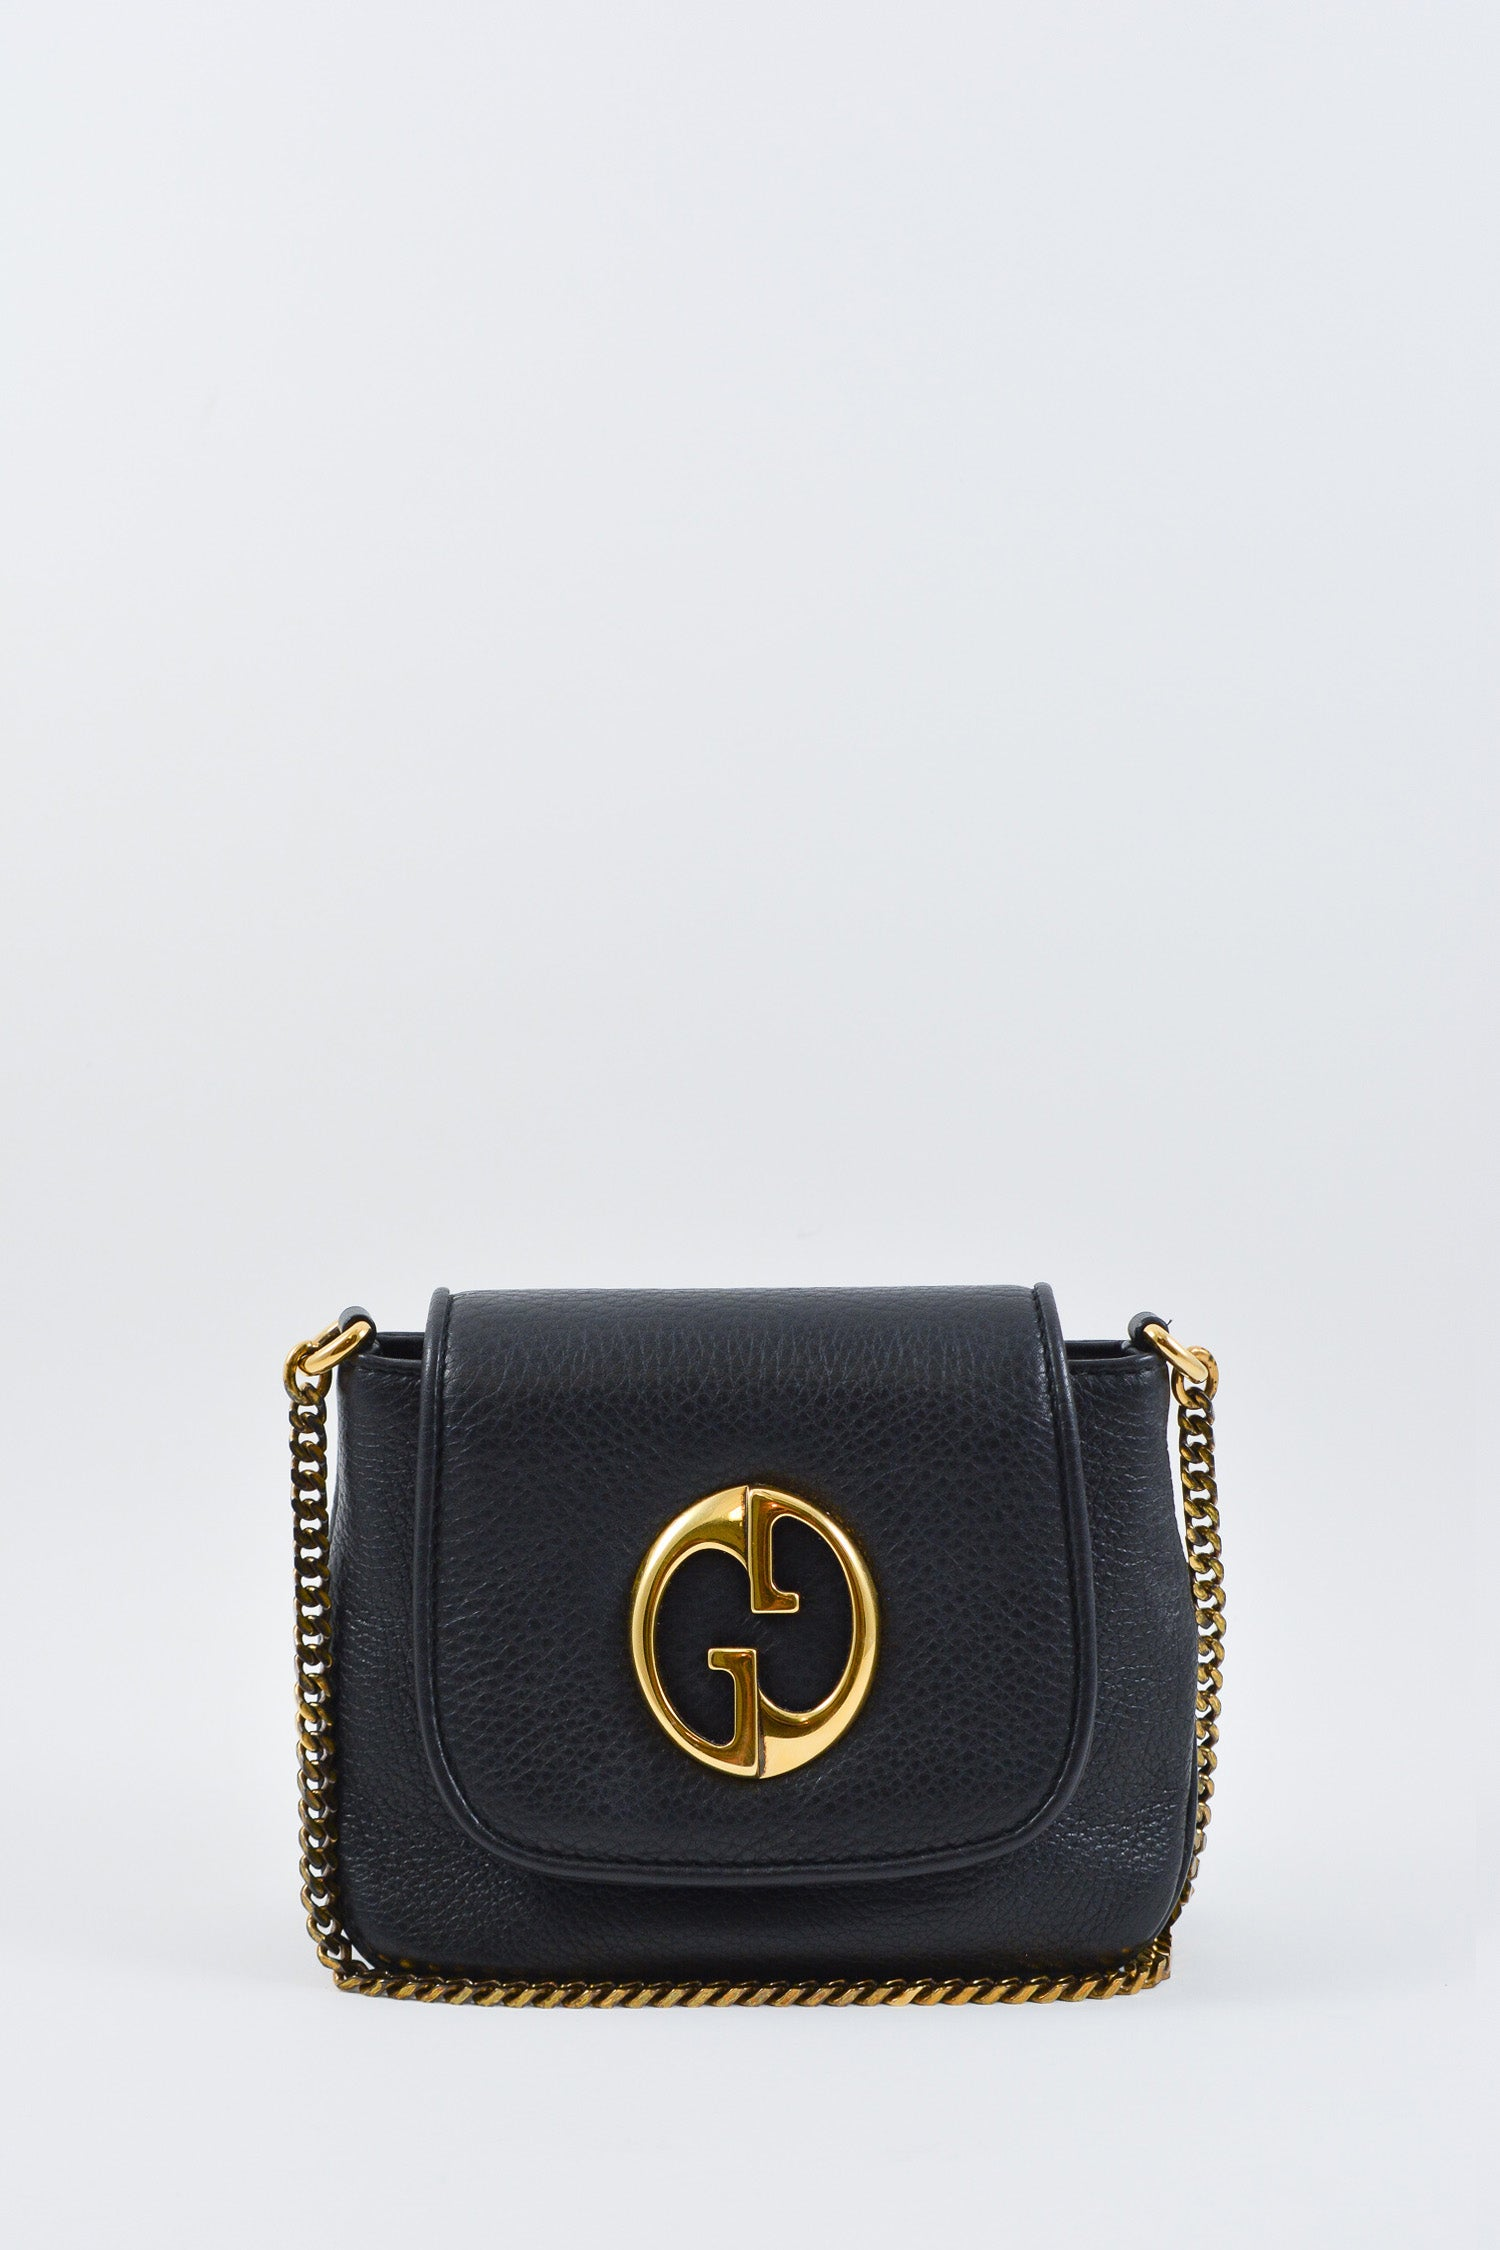 d6bc2bbf2fa Gucci Small Black 1973 Crossbody – Mine   Yours - Vancouver Luxury ...